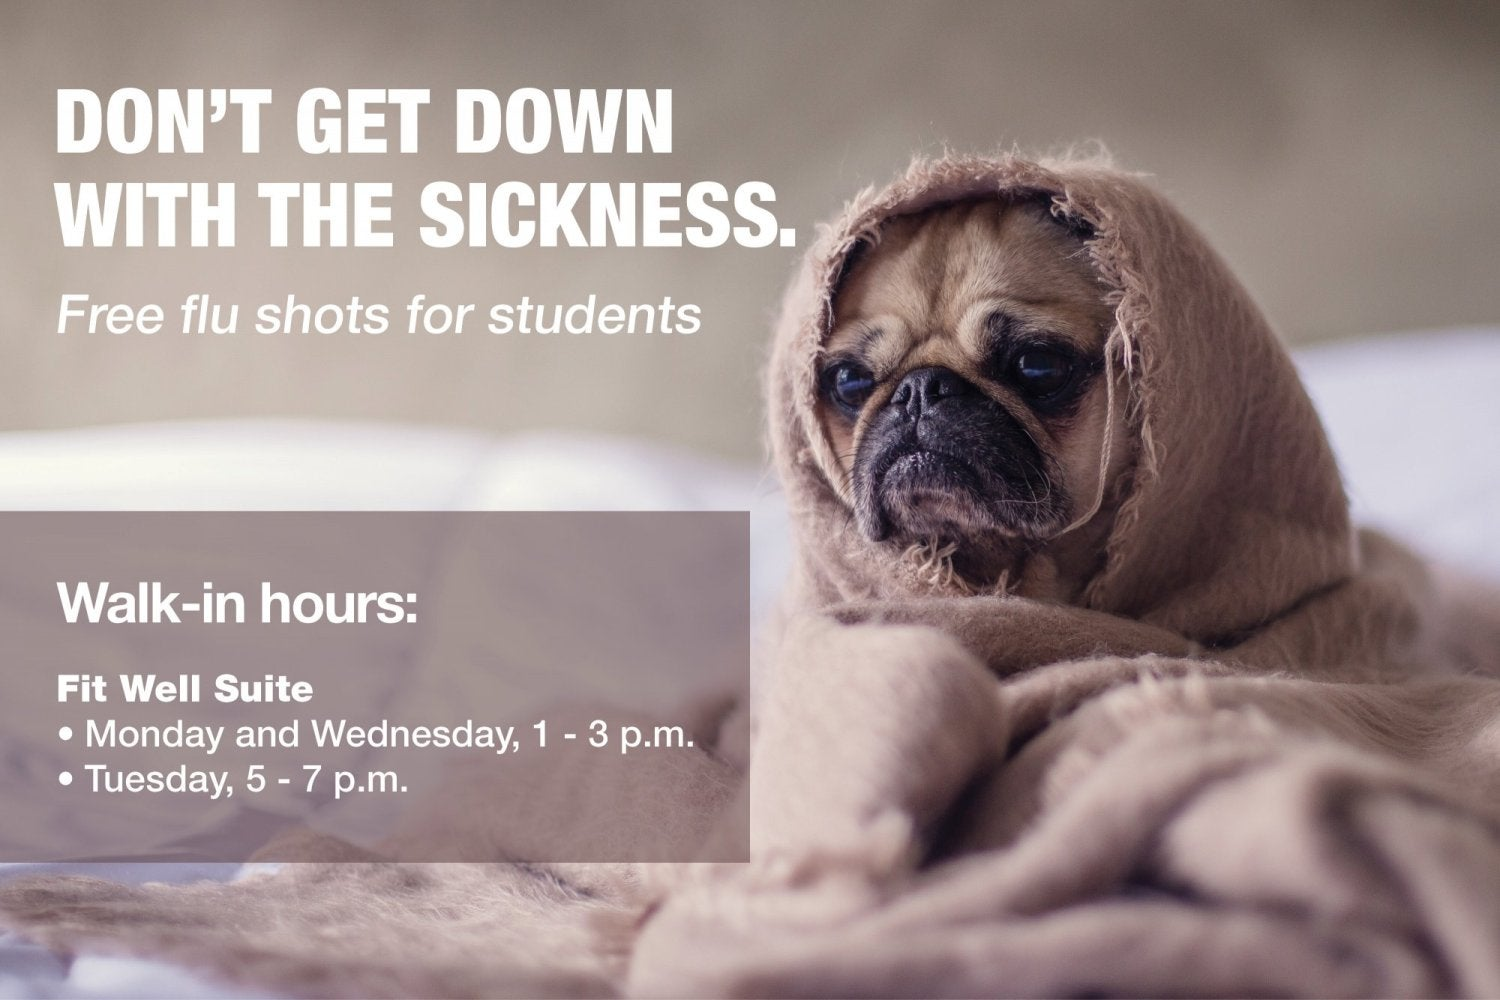 free flu shots at the fitwell suite.  click for more inf